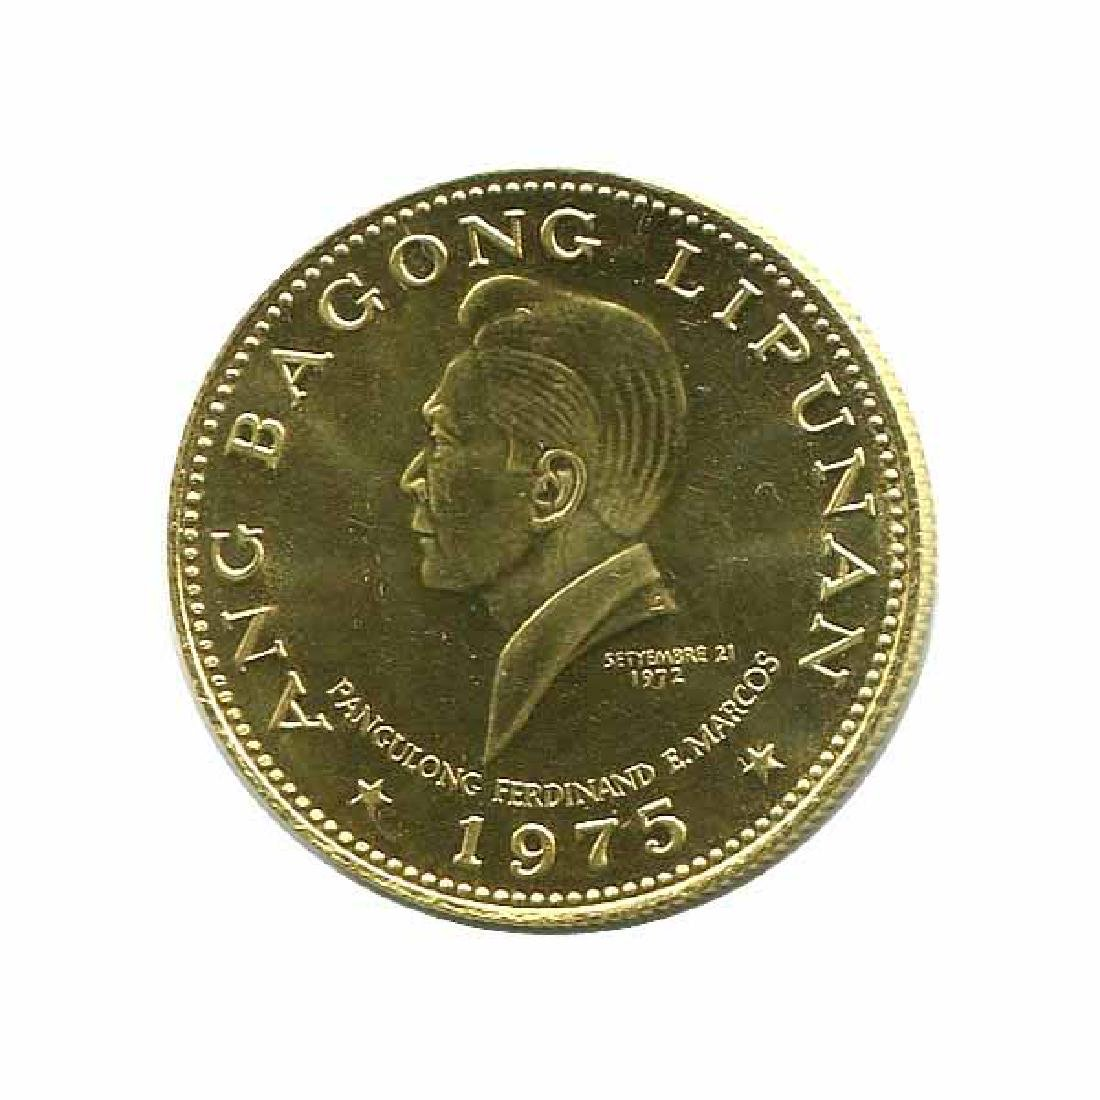 Philippines 1000 piso gold 1975 New Society